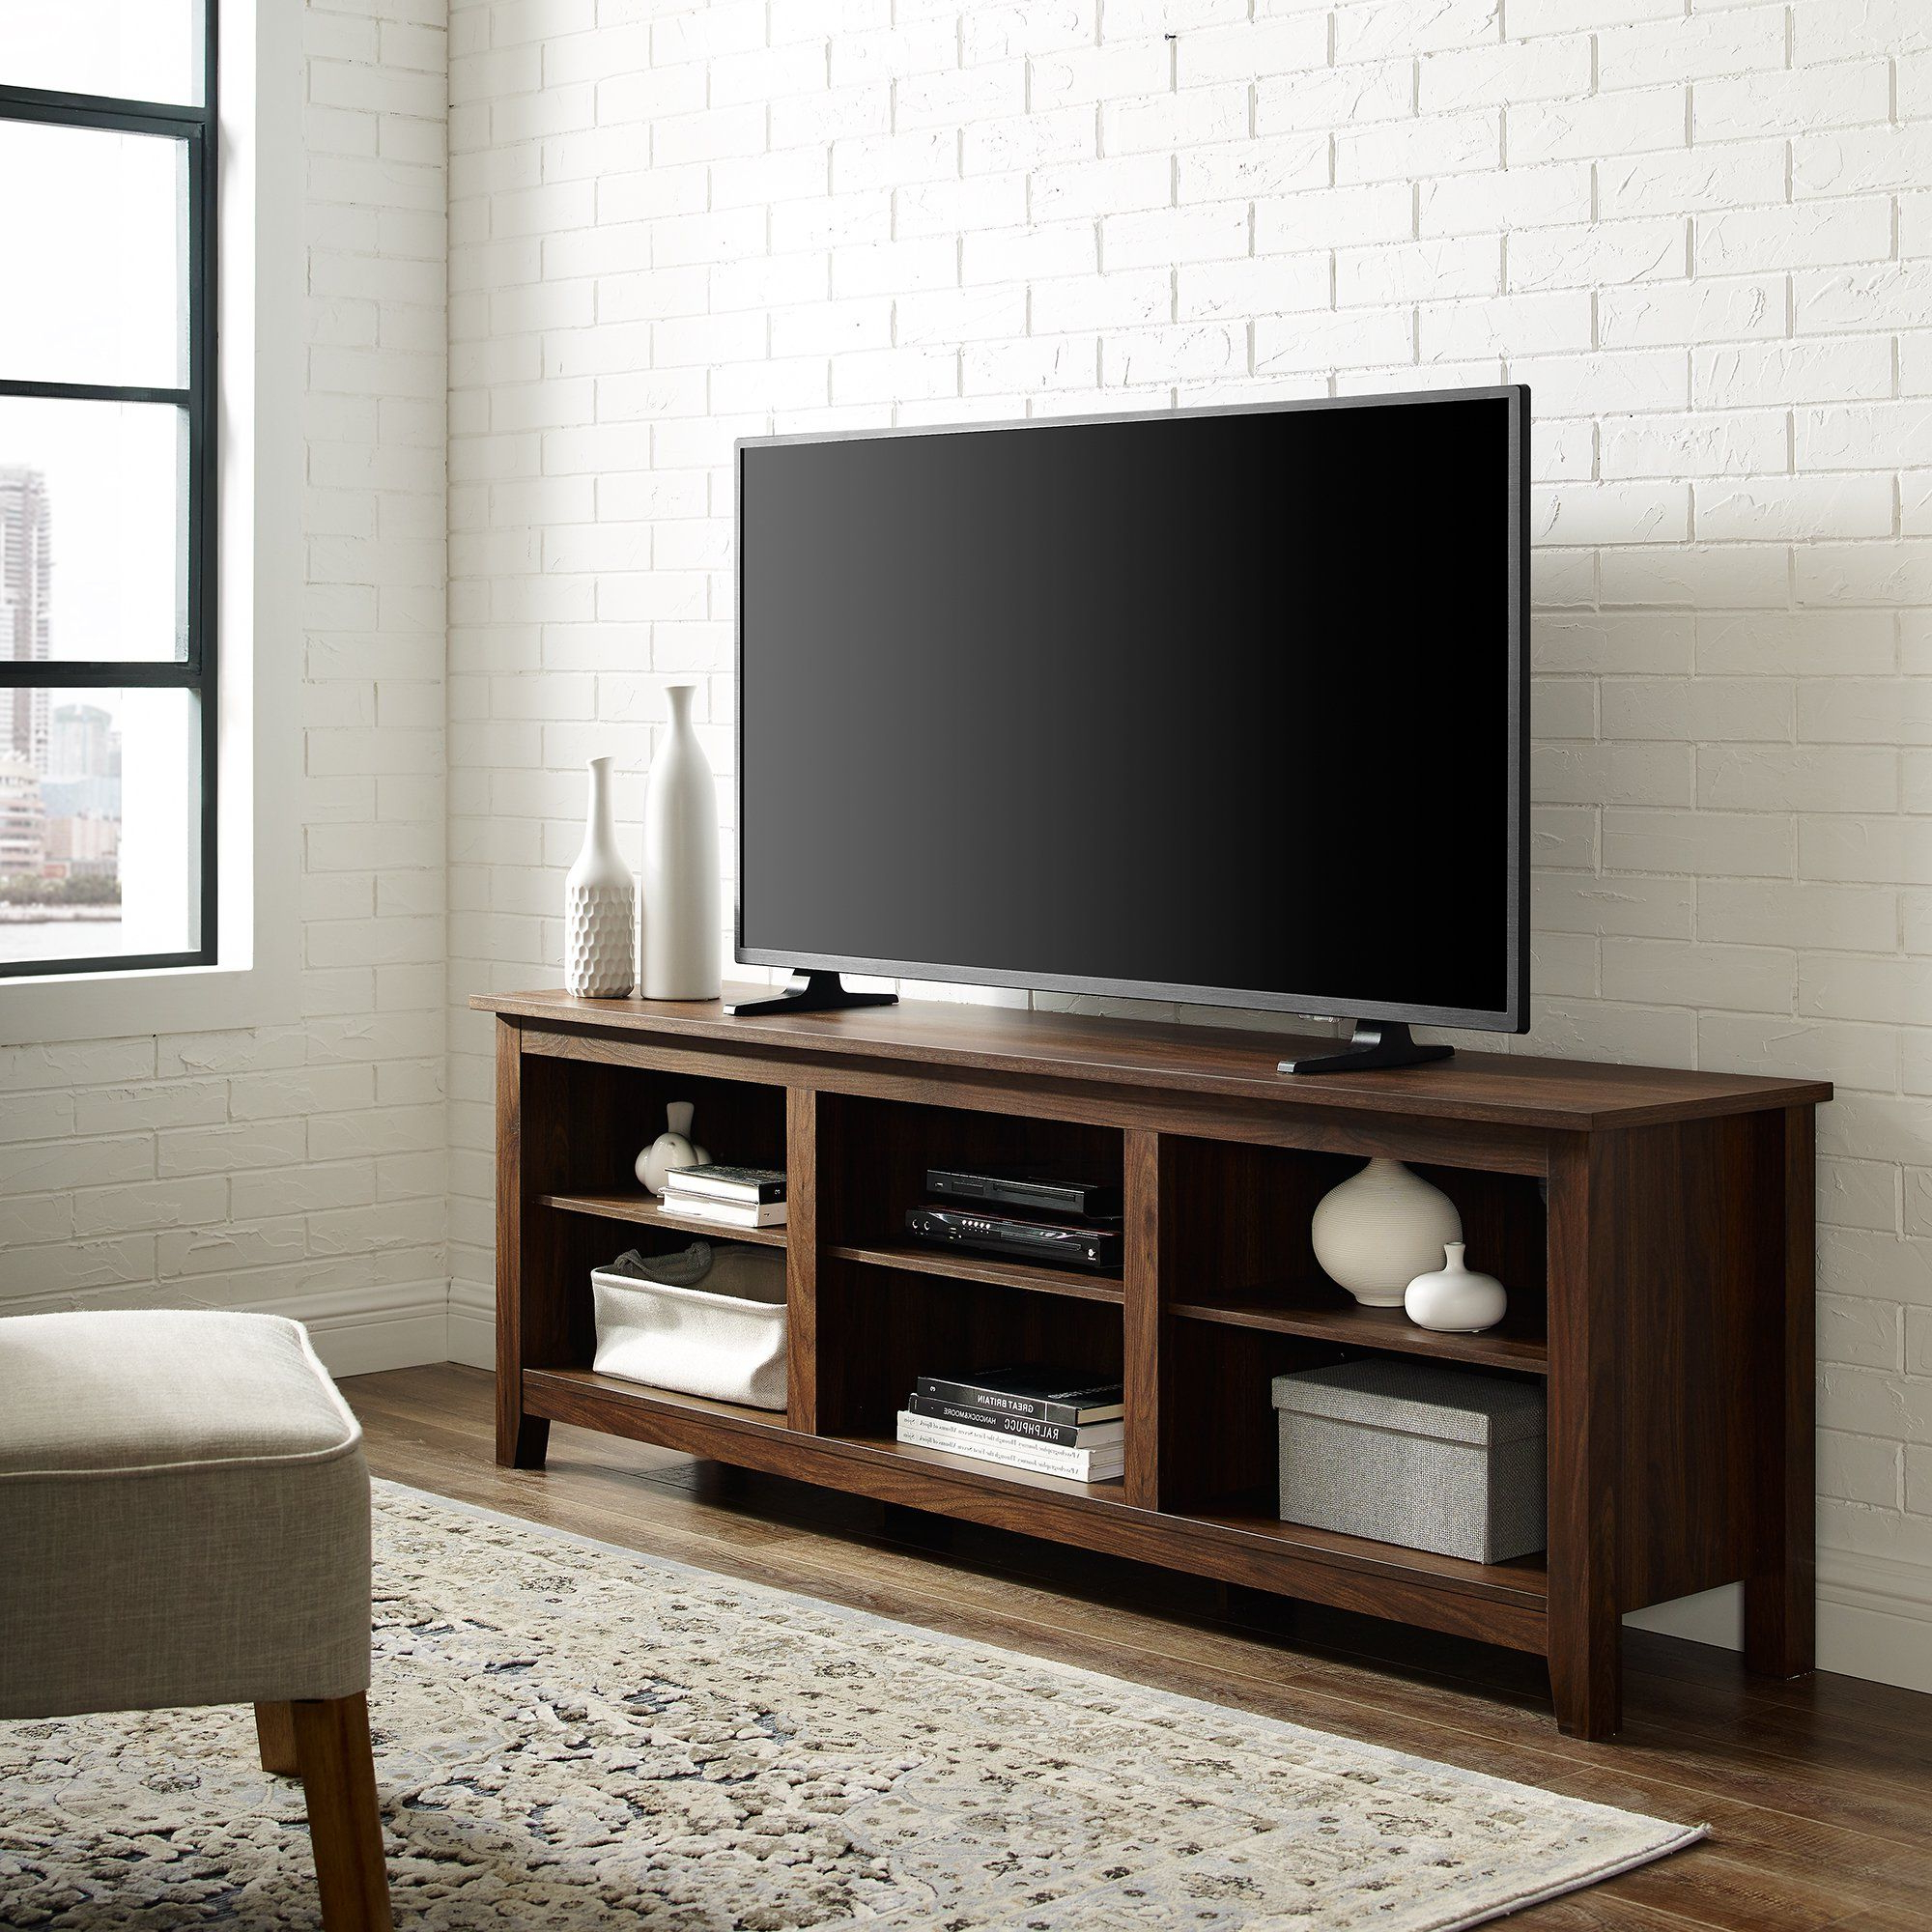 Newest Woven Paths Open Storage Tv Stand For Tvs Up To 80 With Woven Paths Open Storage Tv Stands With Multiple Finishes (View 3 of 10)